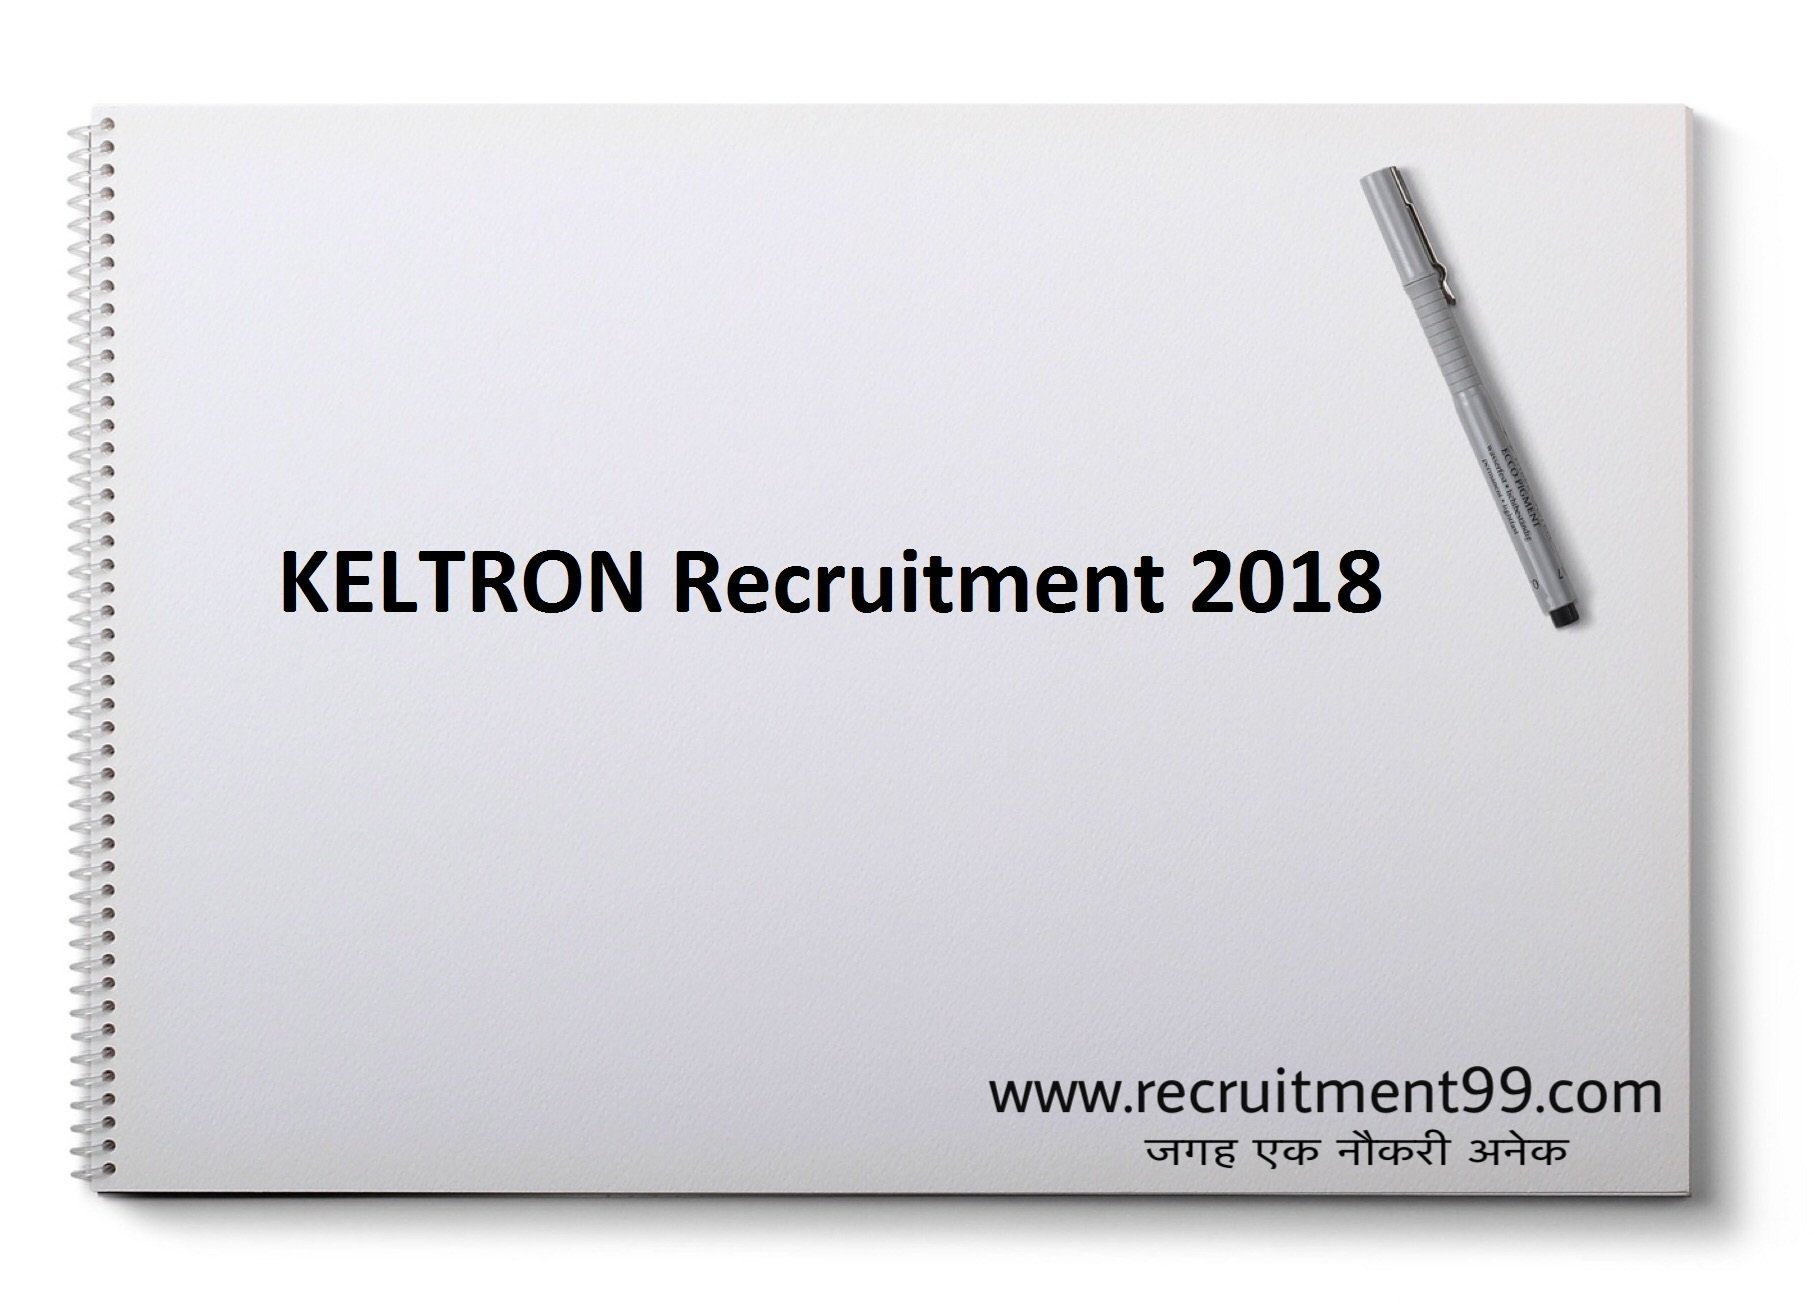 KELTRON Deputy Manager Engineer, Technical Assistant Recruitment Admit Card & Result 2018